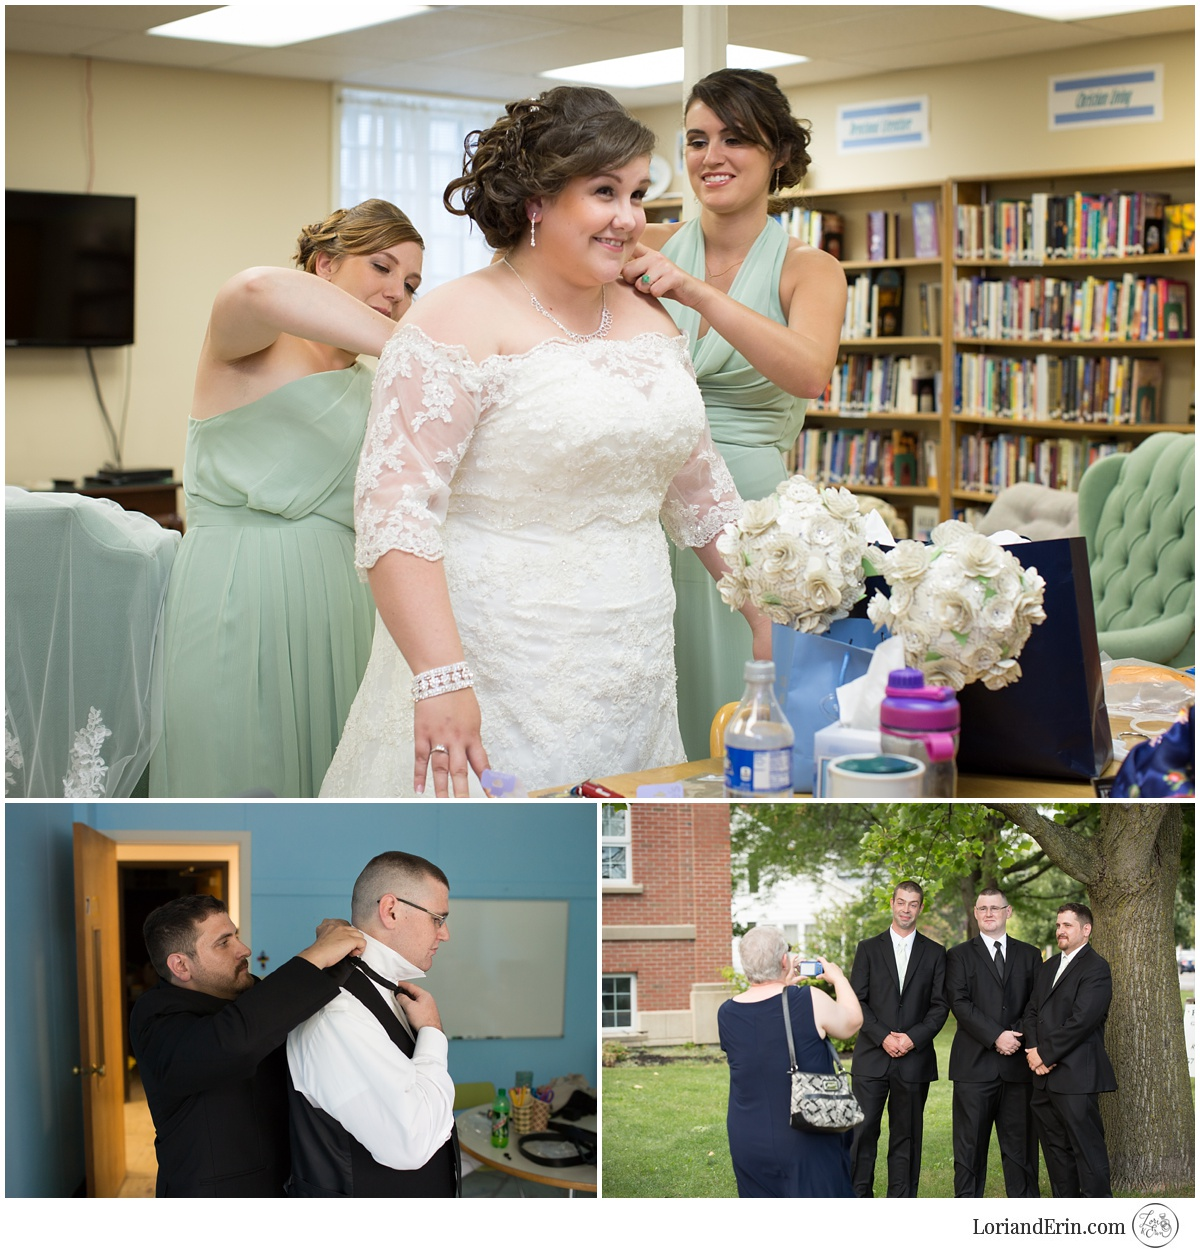 syracuse_ny_wedding_photographers_0527.jpg